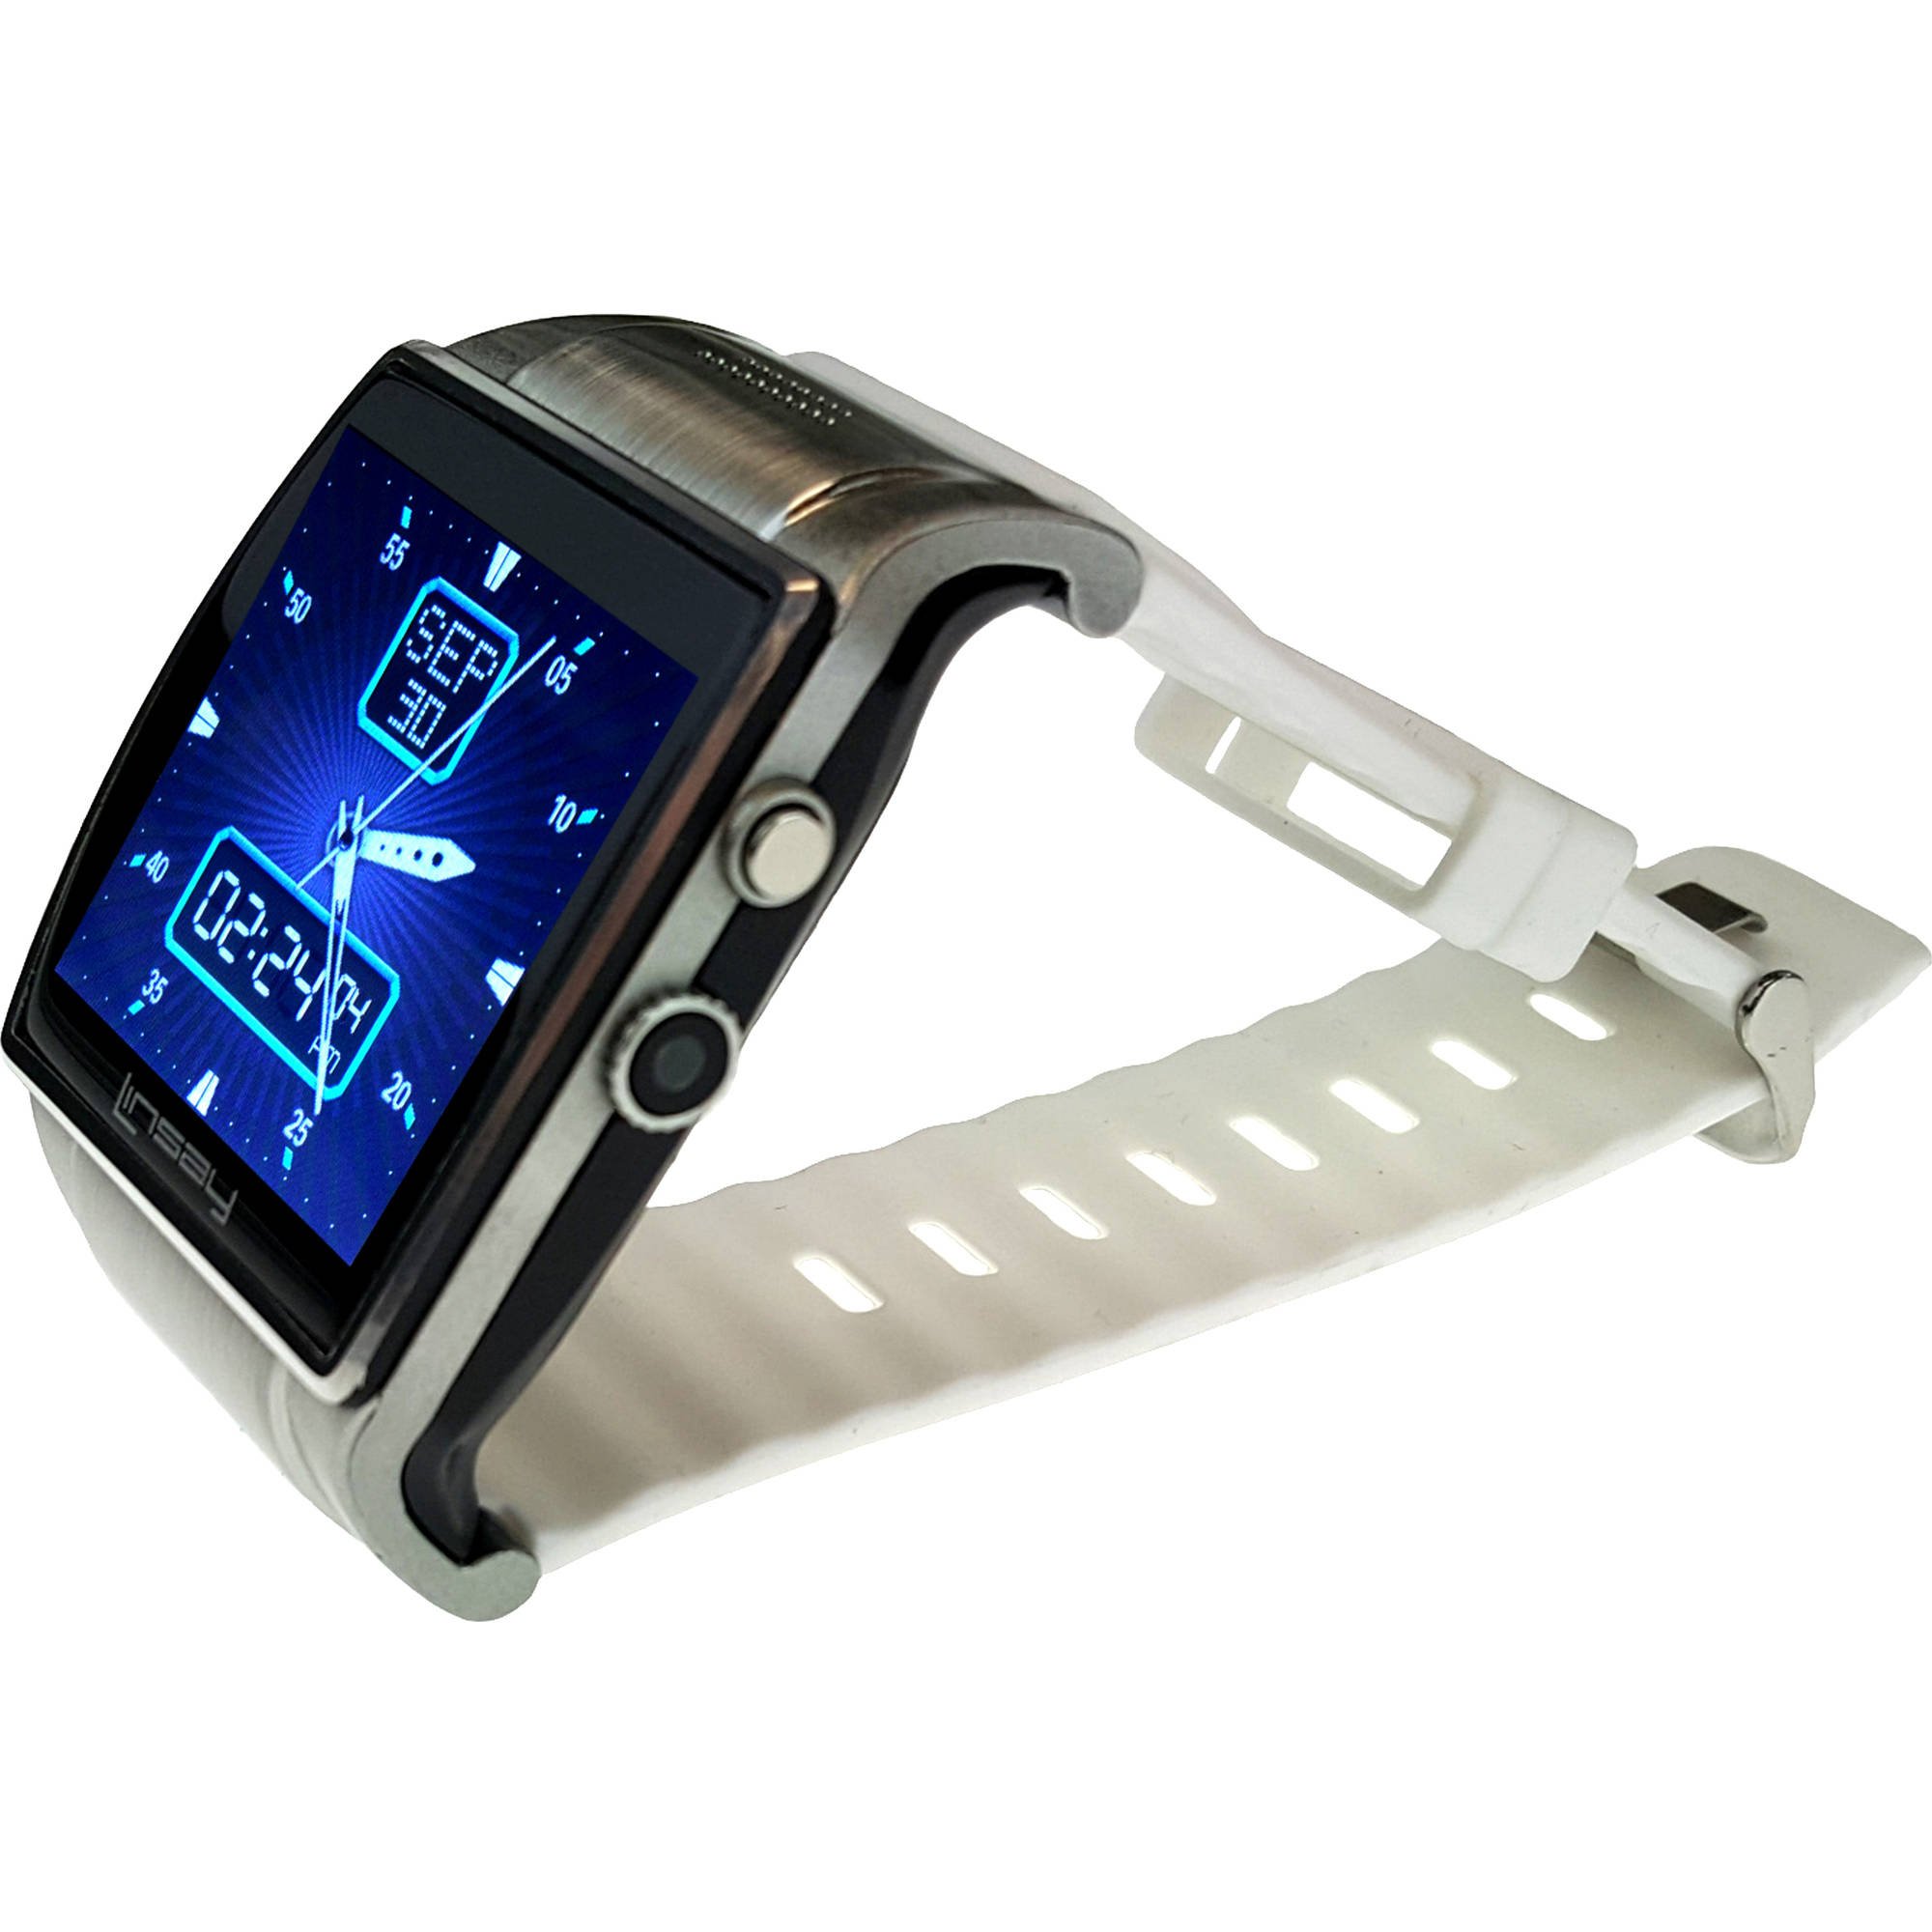 1.5 Executive Smart Watch with Camera and microSD Card Slot up to 64GB, White